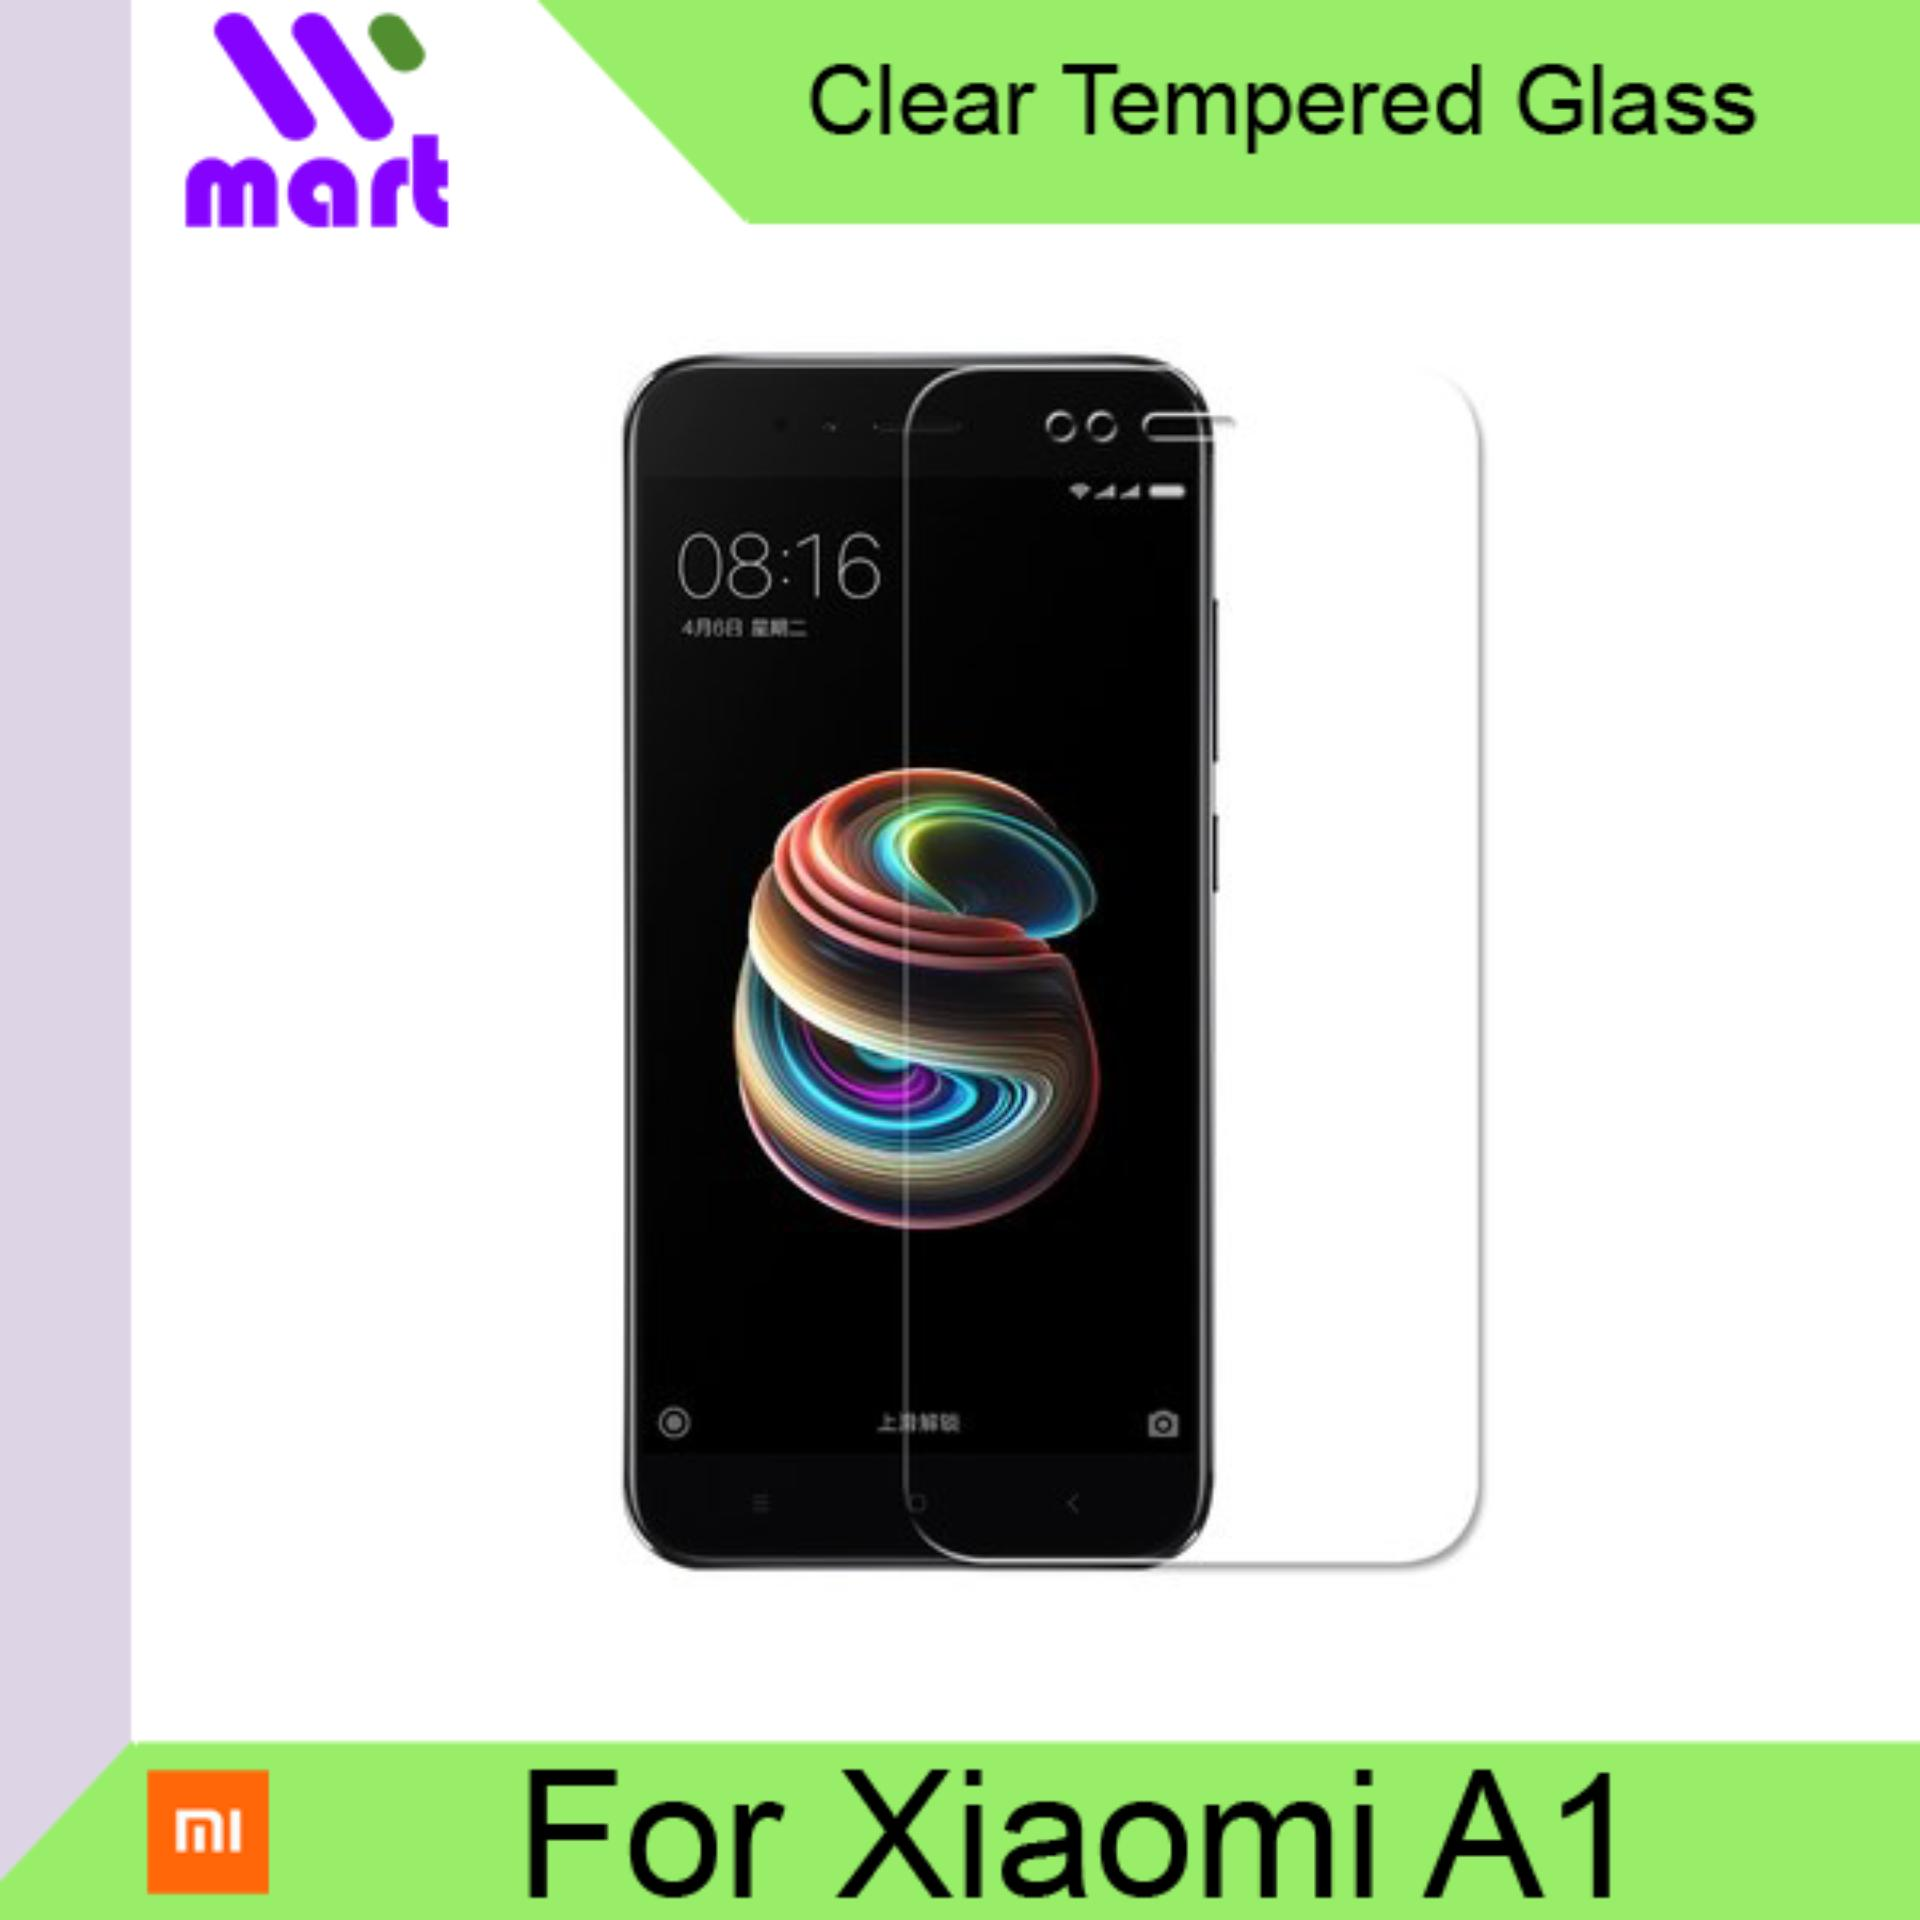 Tempered Glass Screen Protector (Clear) For Xiaomi A1